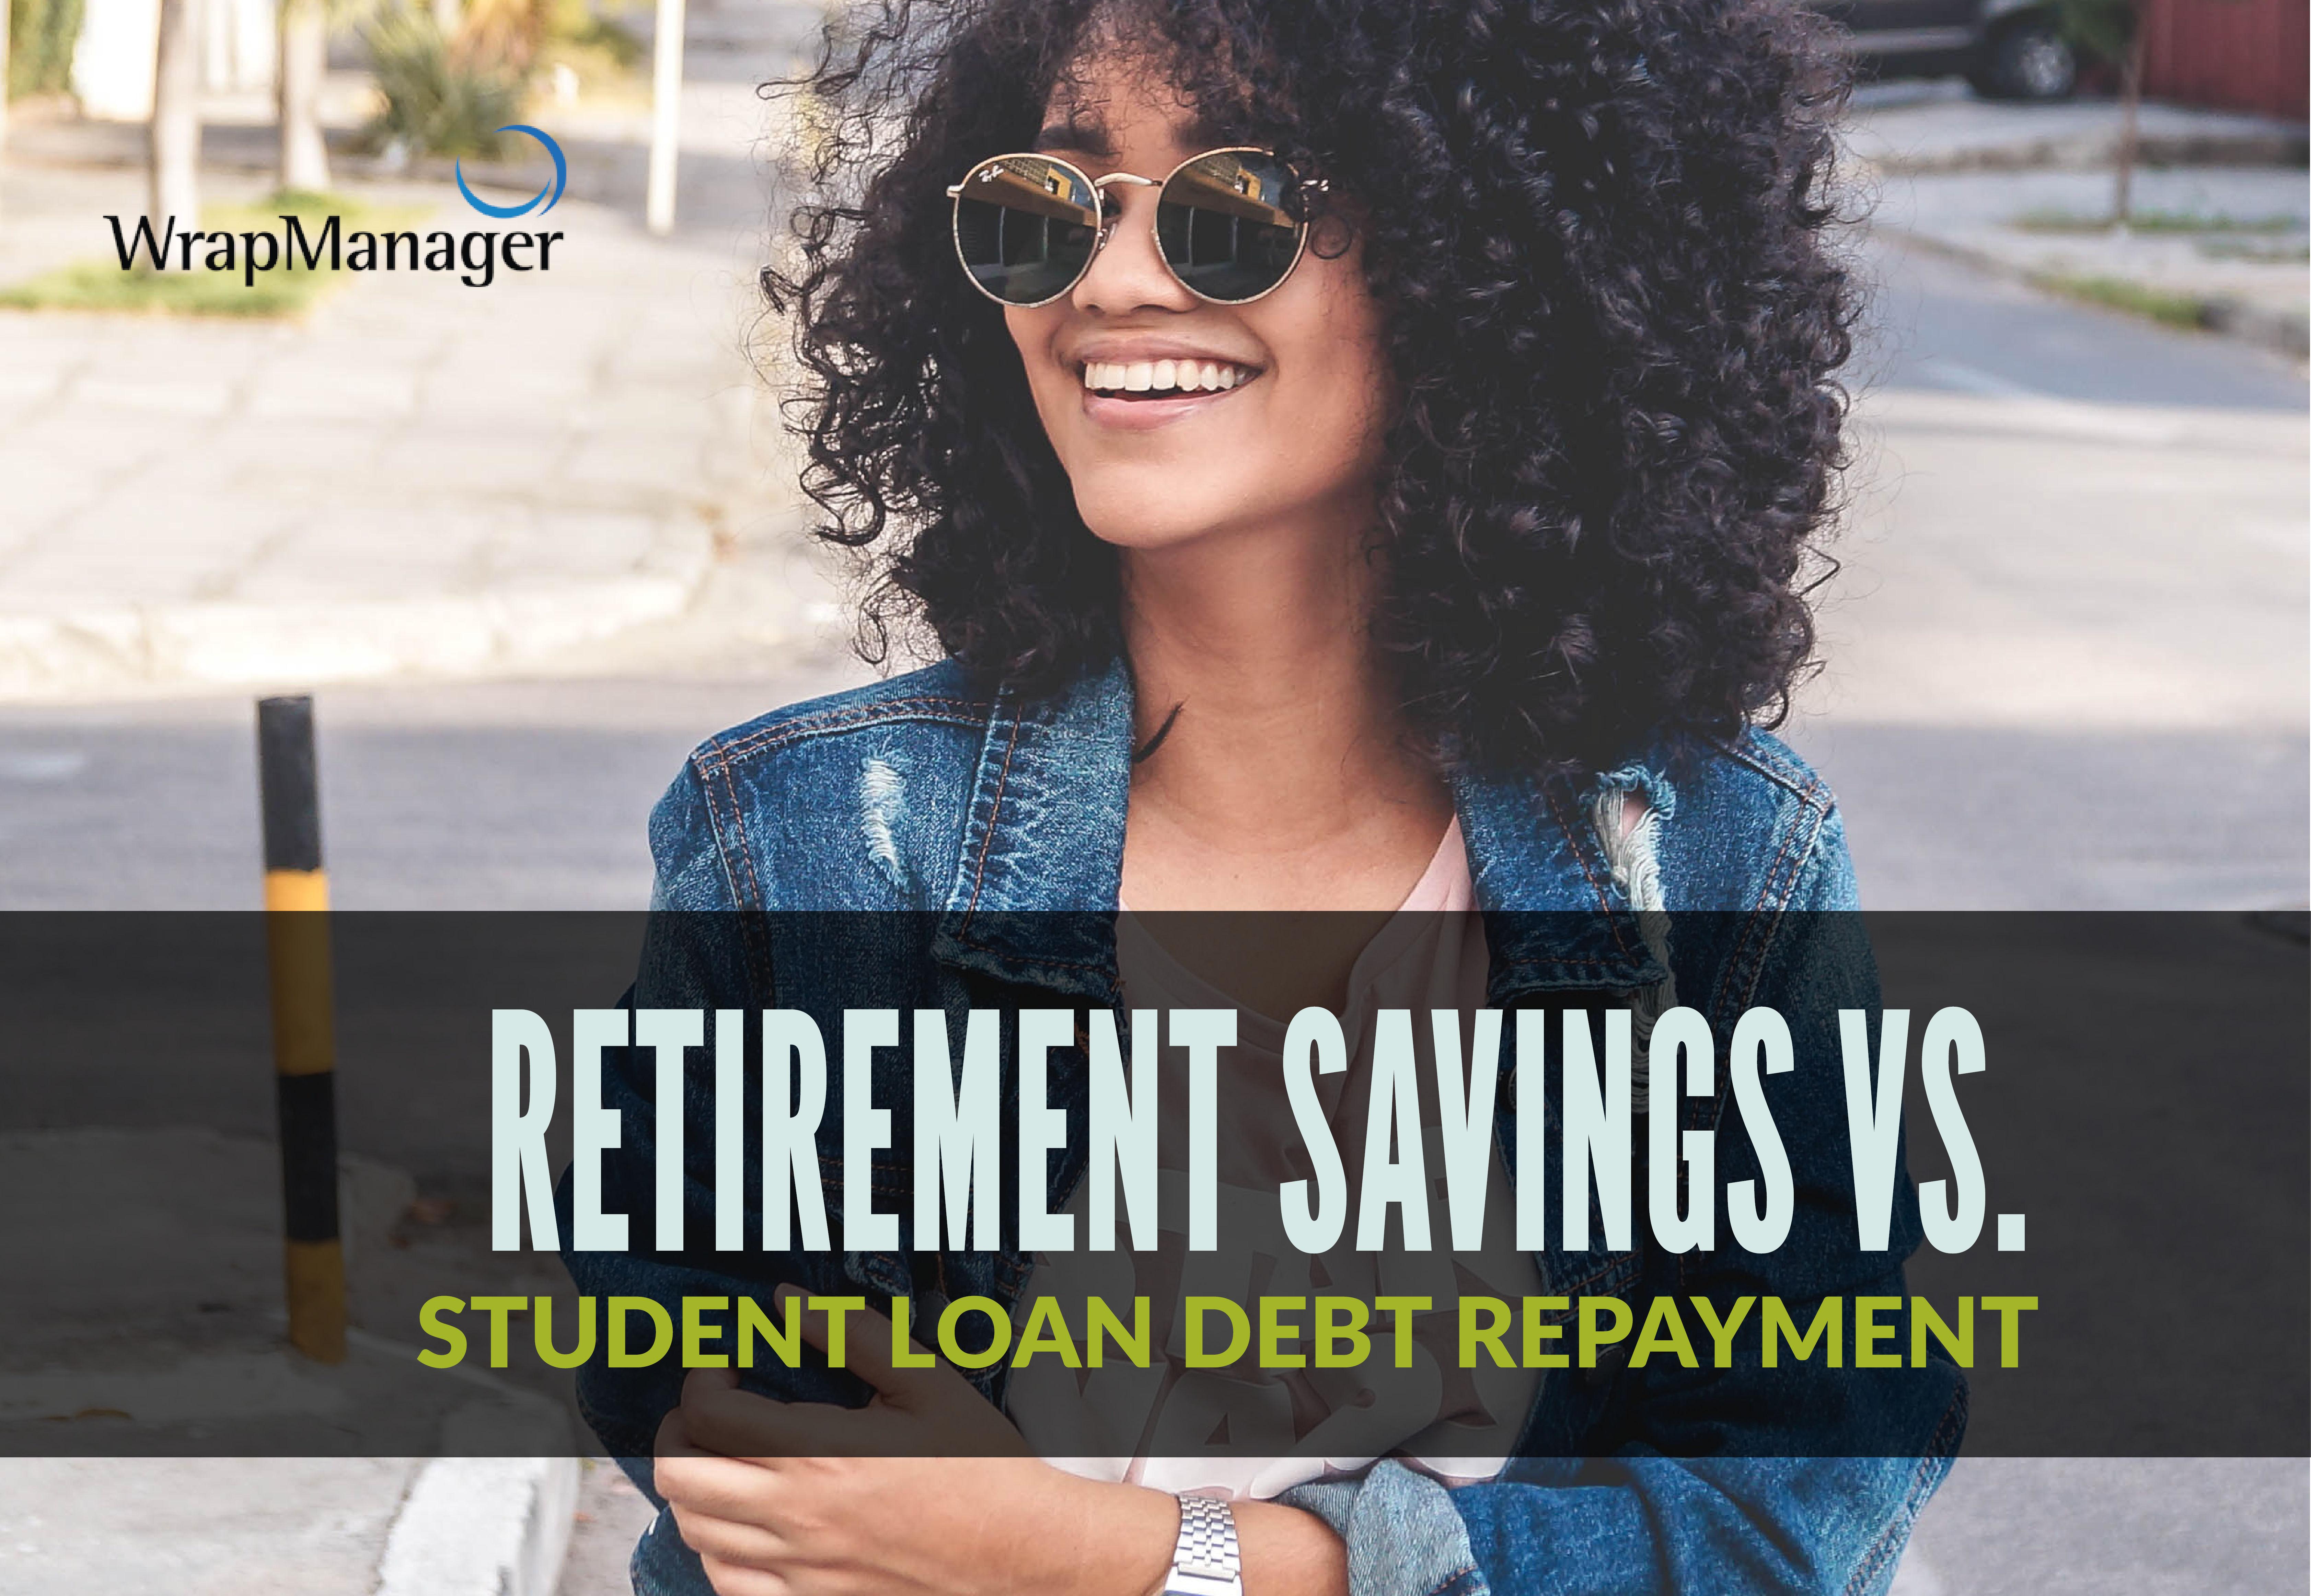 Balancing Student Loan Repayments Against Saving for Retirement